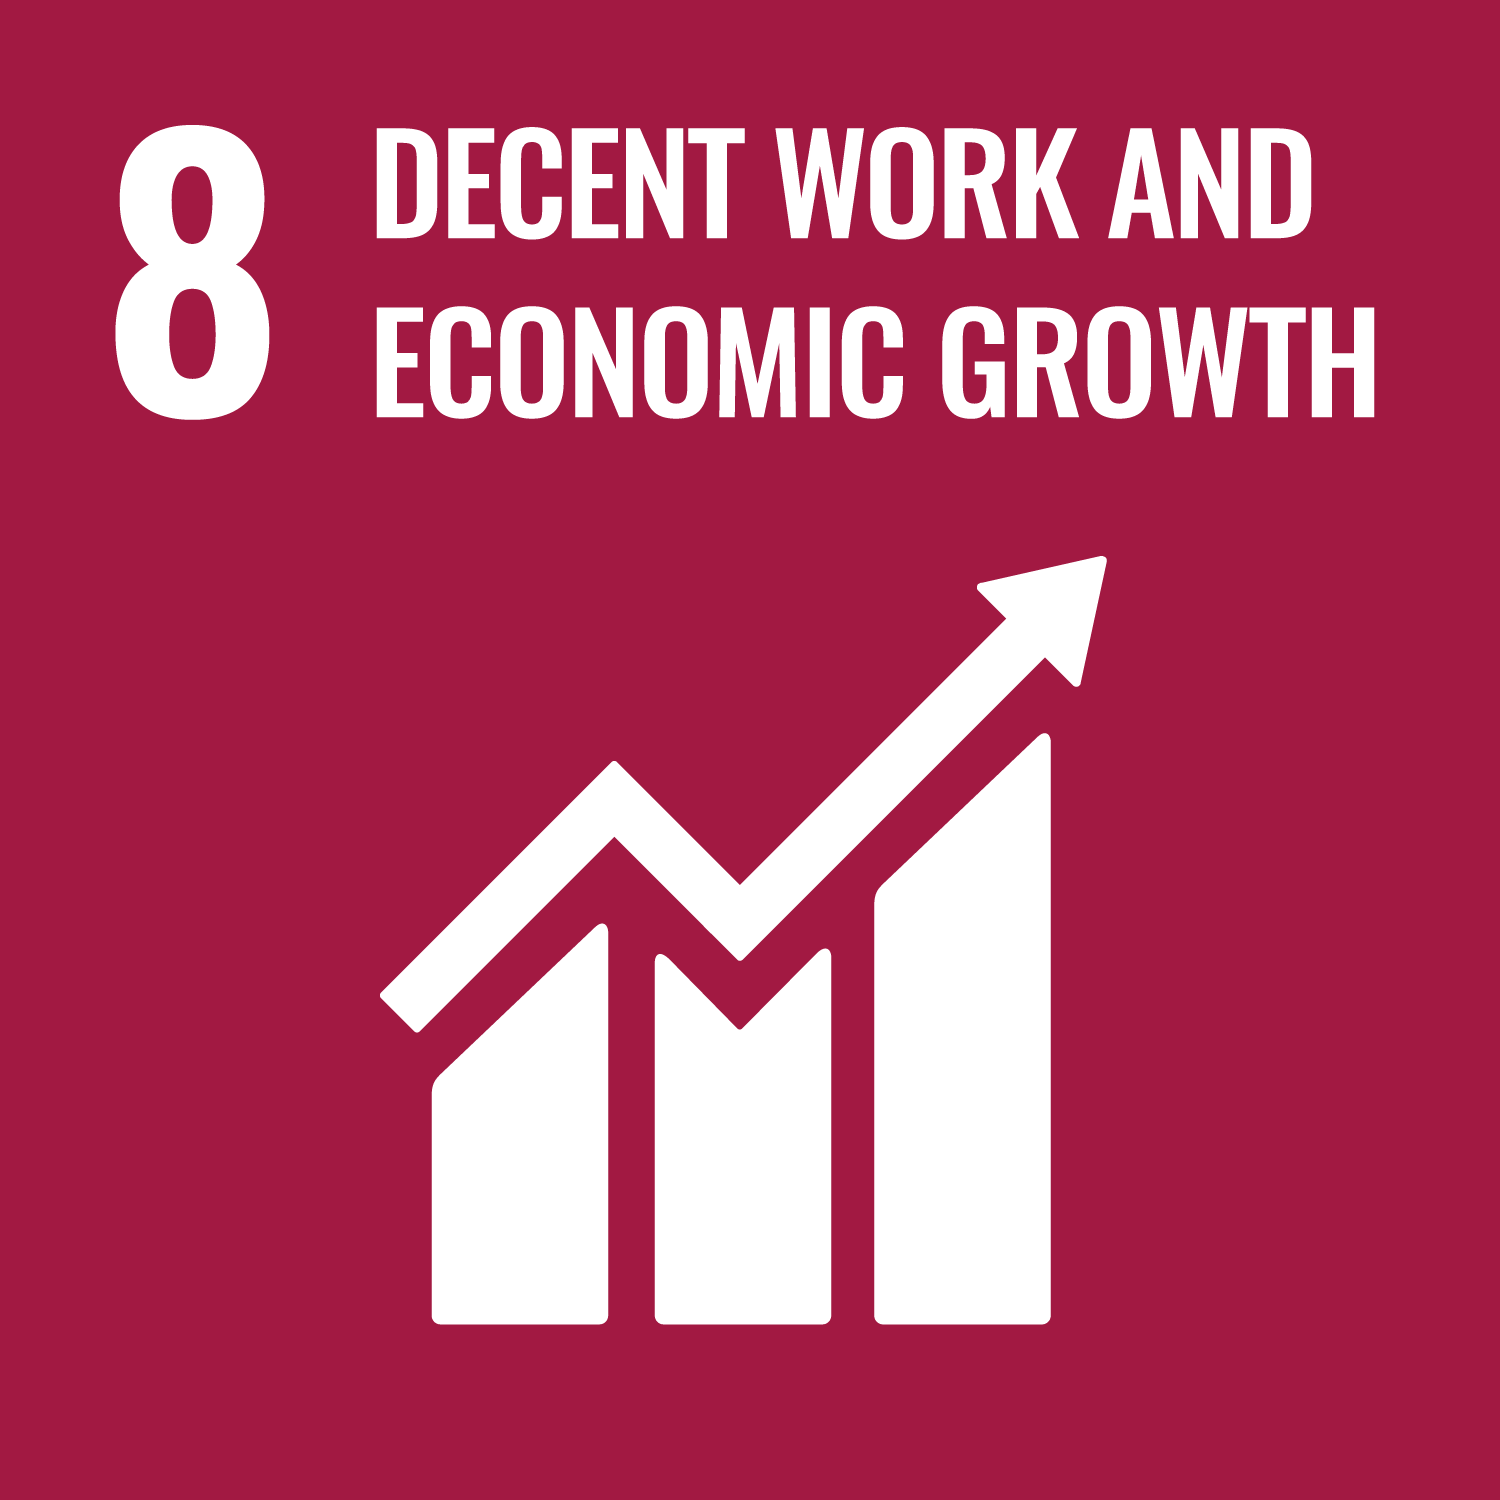 Sustainable Development Goal 8. Promote inclusive and sustainable economic growth, employment and decent work for all.